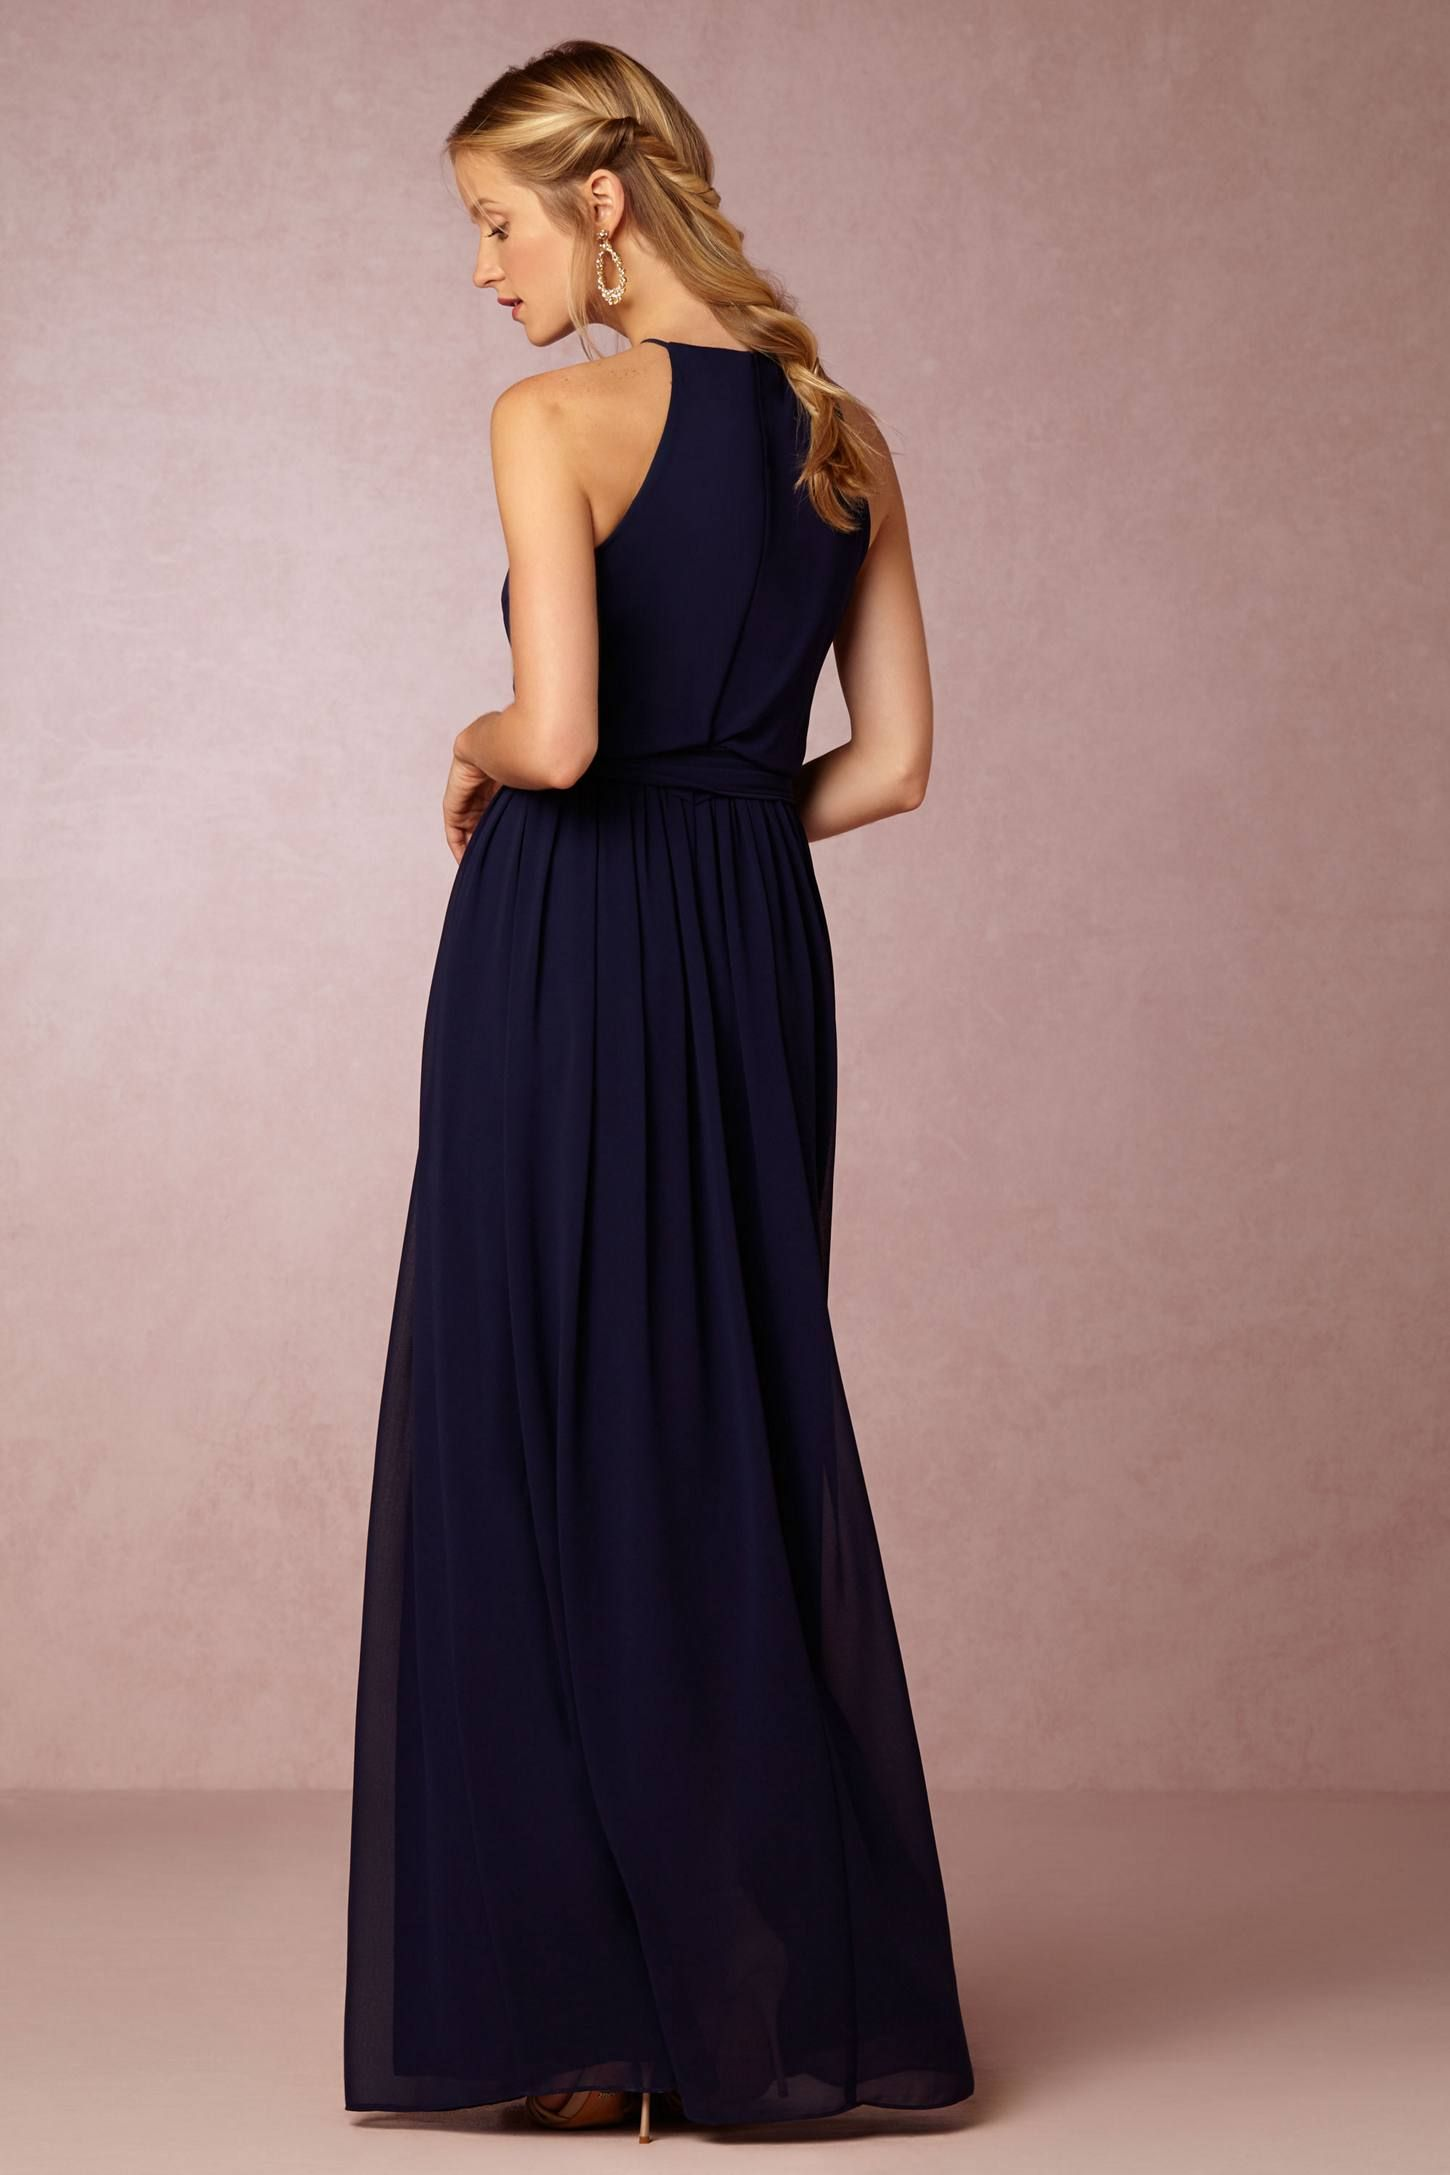 Alana dress black tie anthropologie and shopping